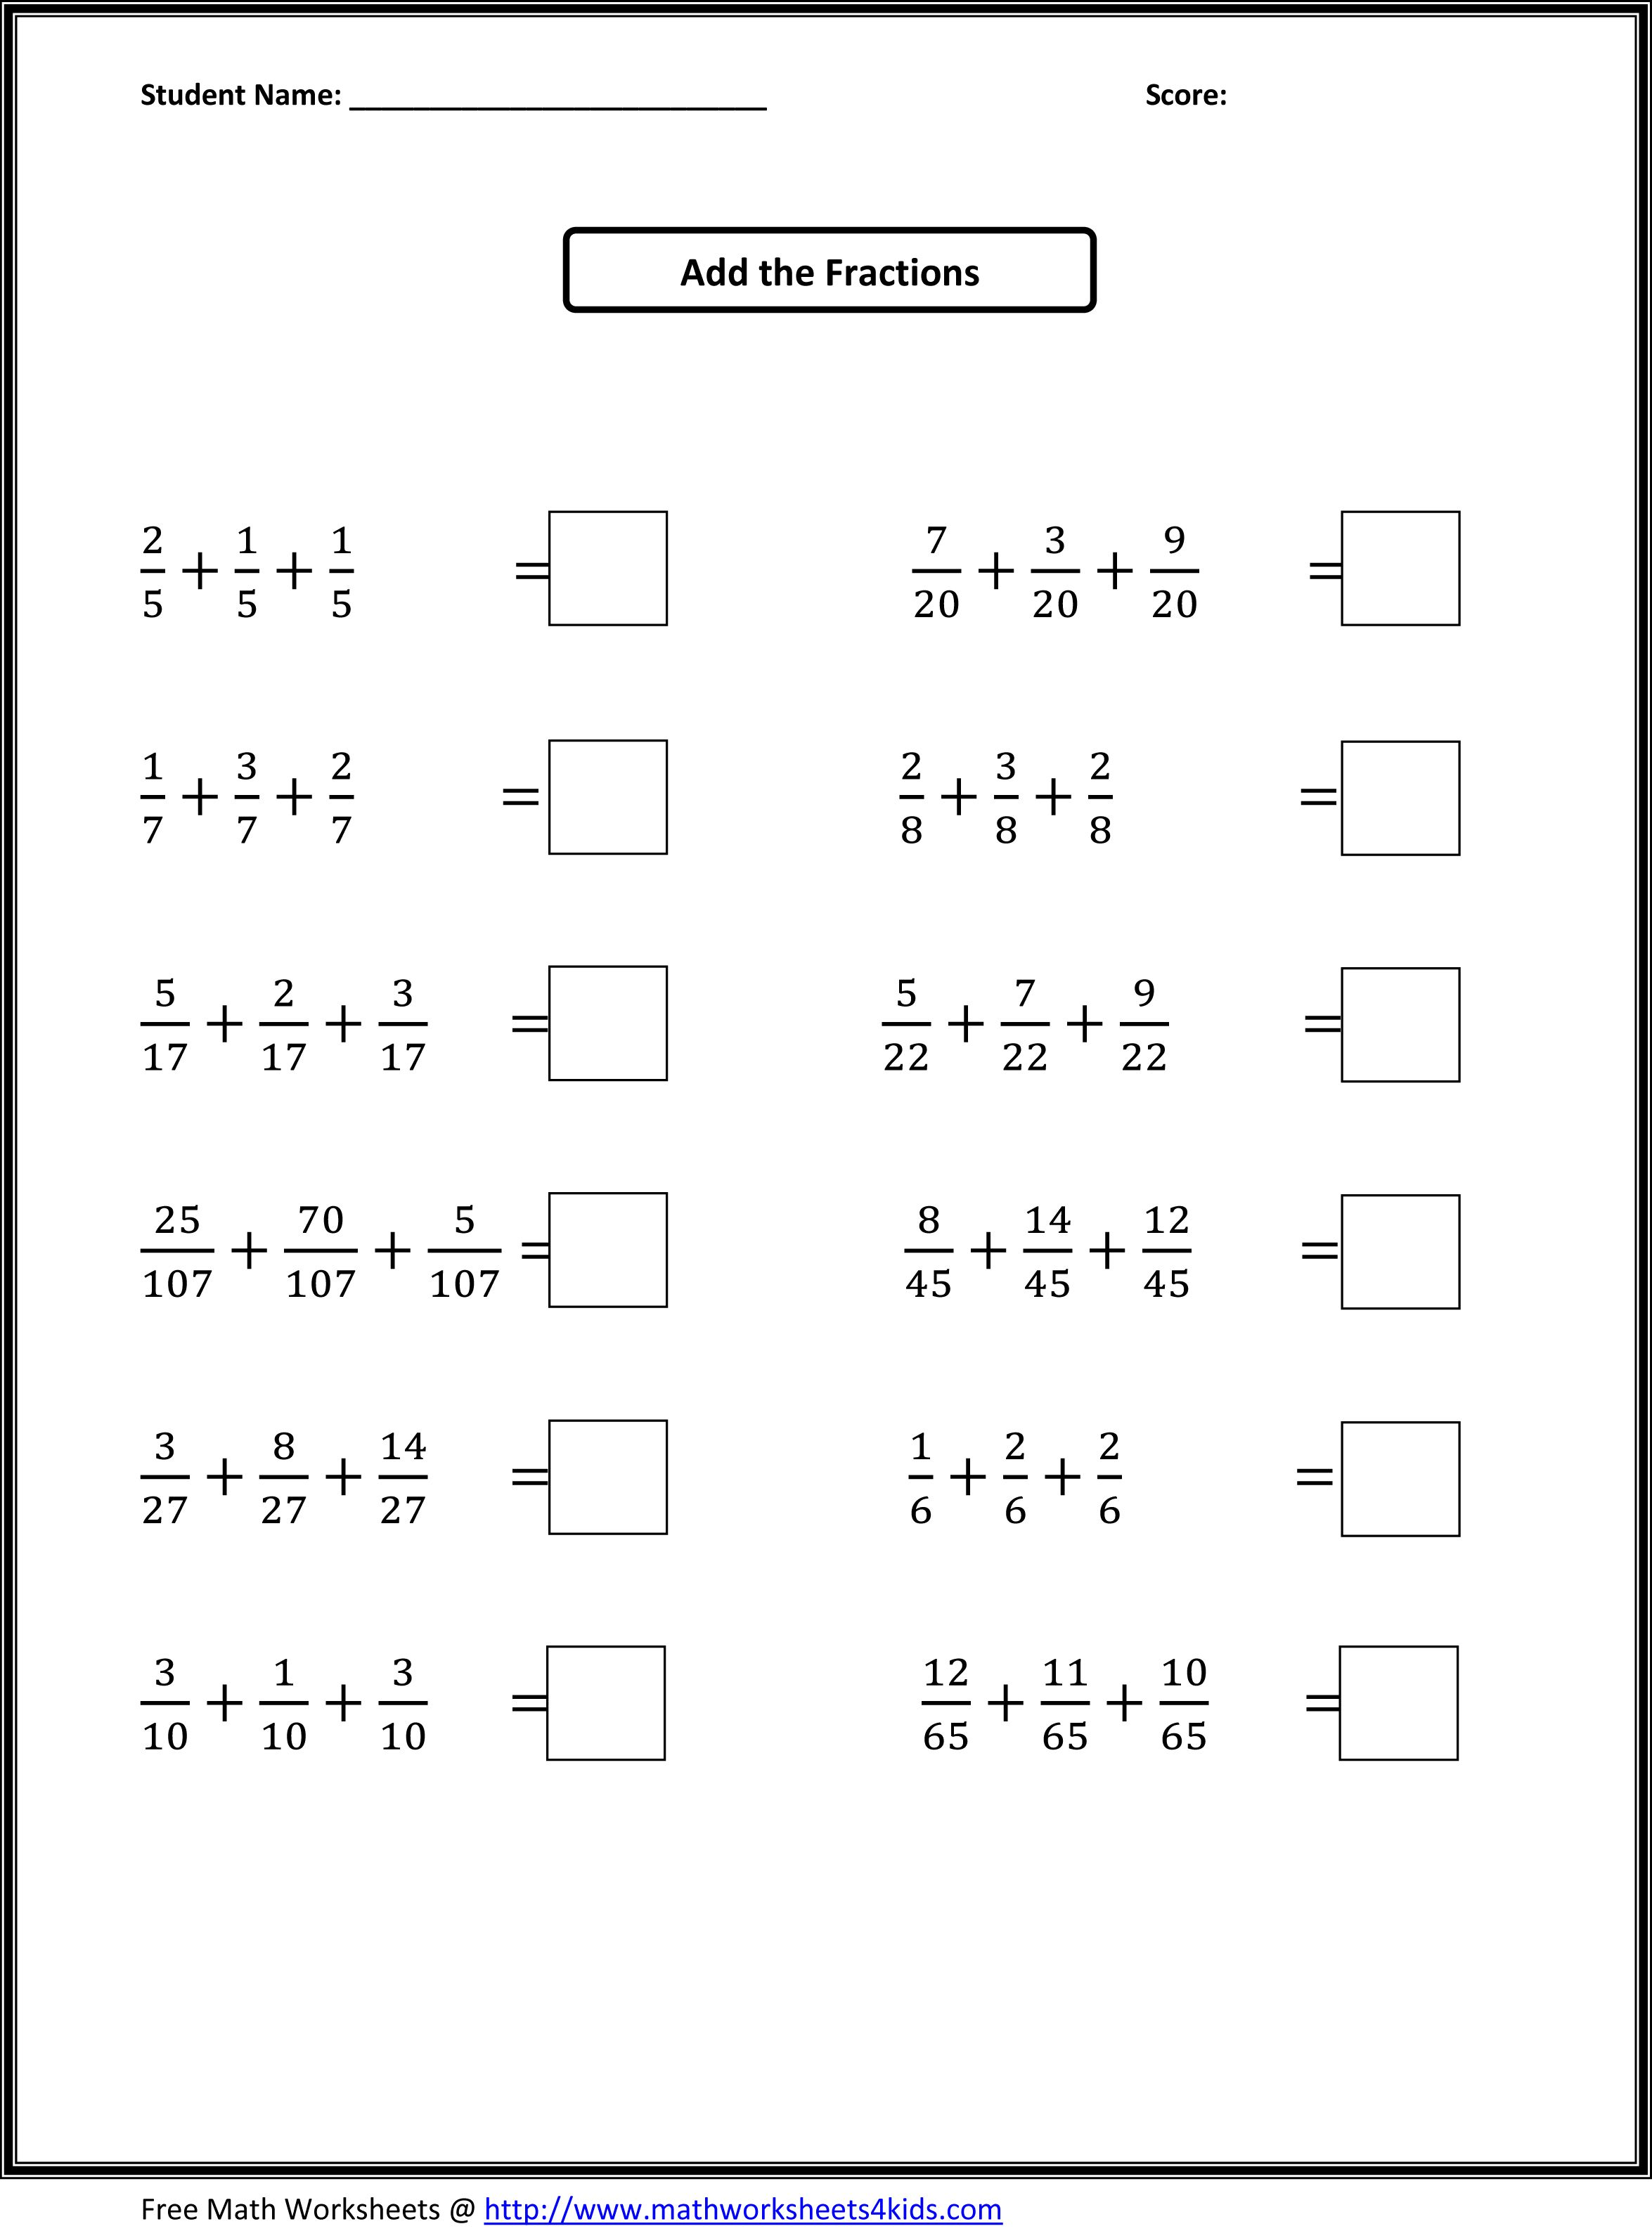 Worksheets for all early ed grades All topics of math – Multiplying Fractions Worksheets 5th Grade